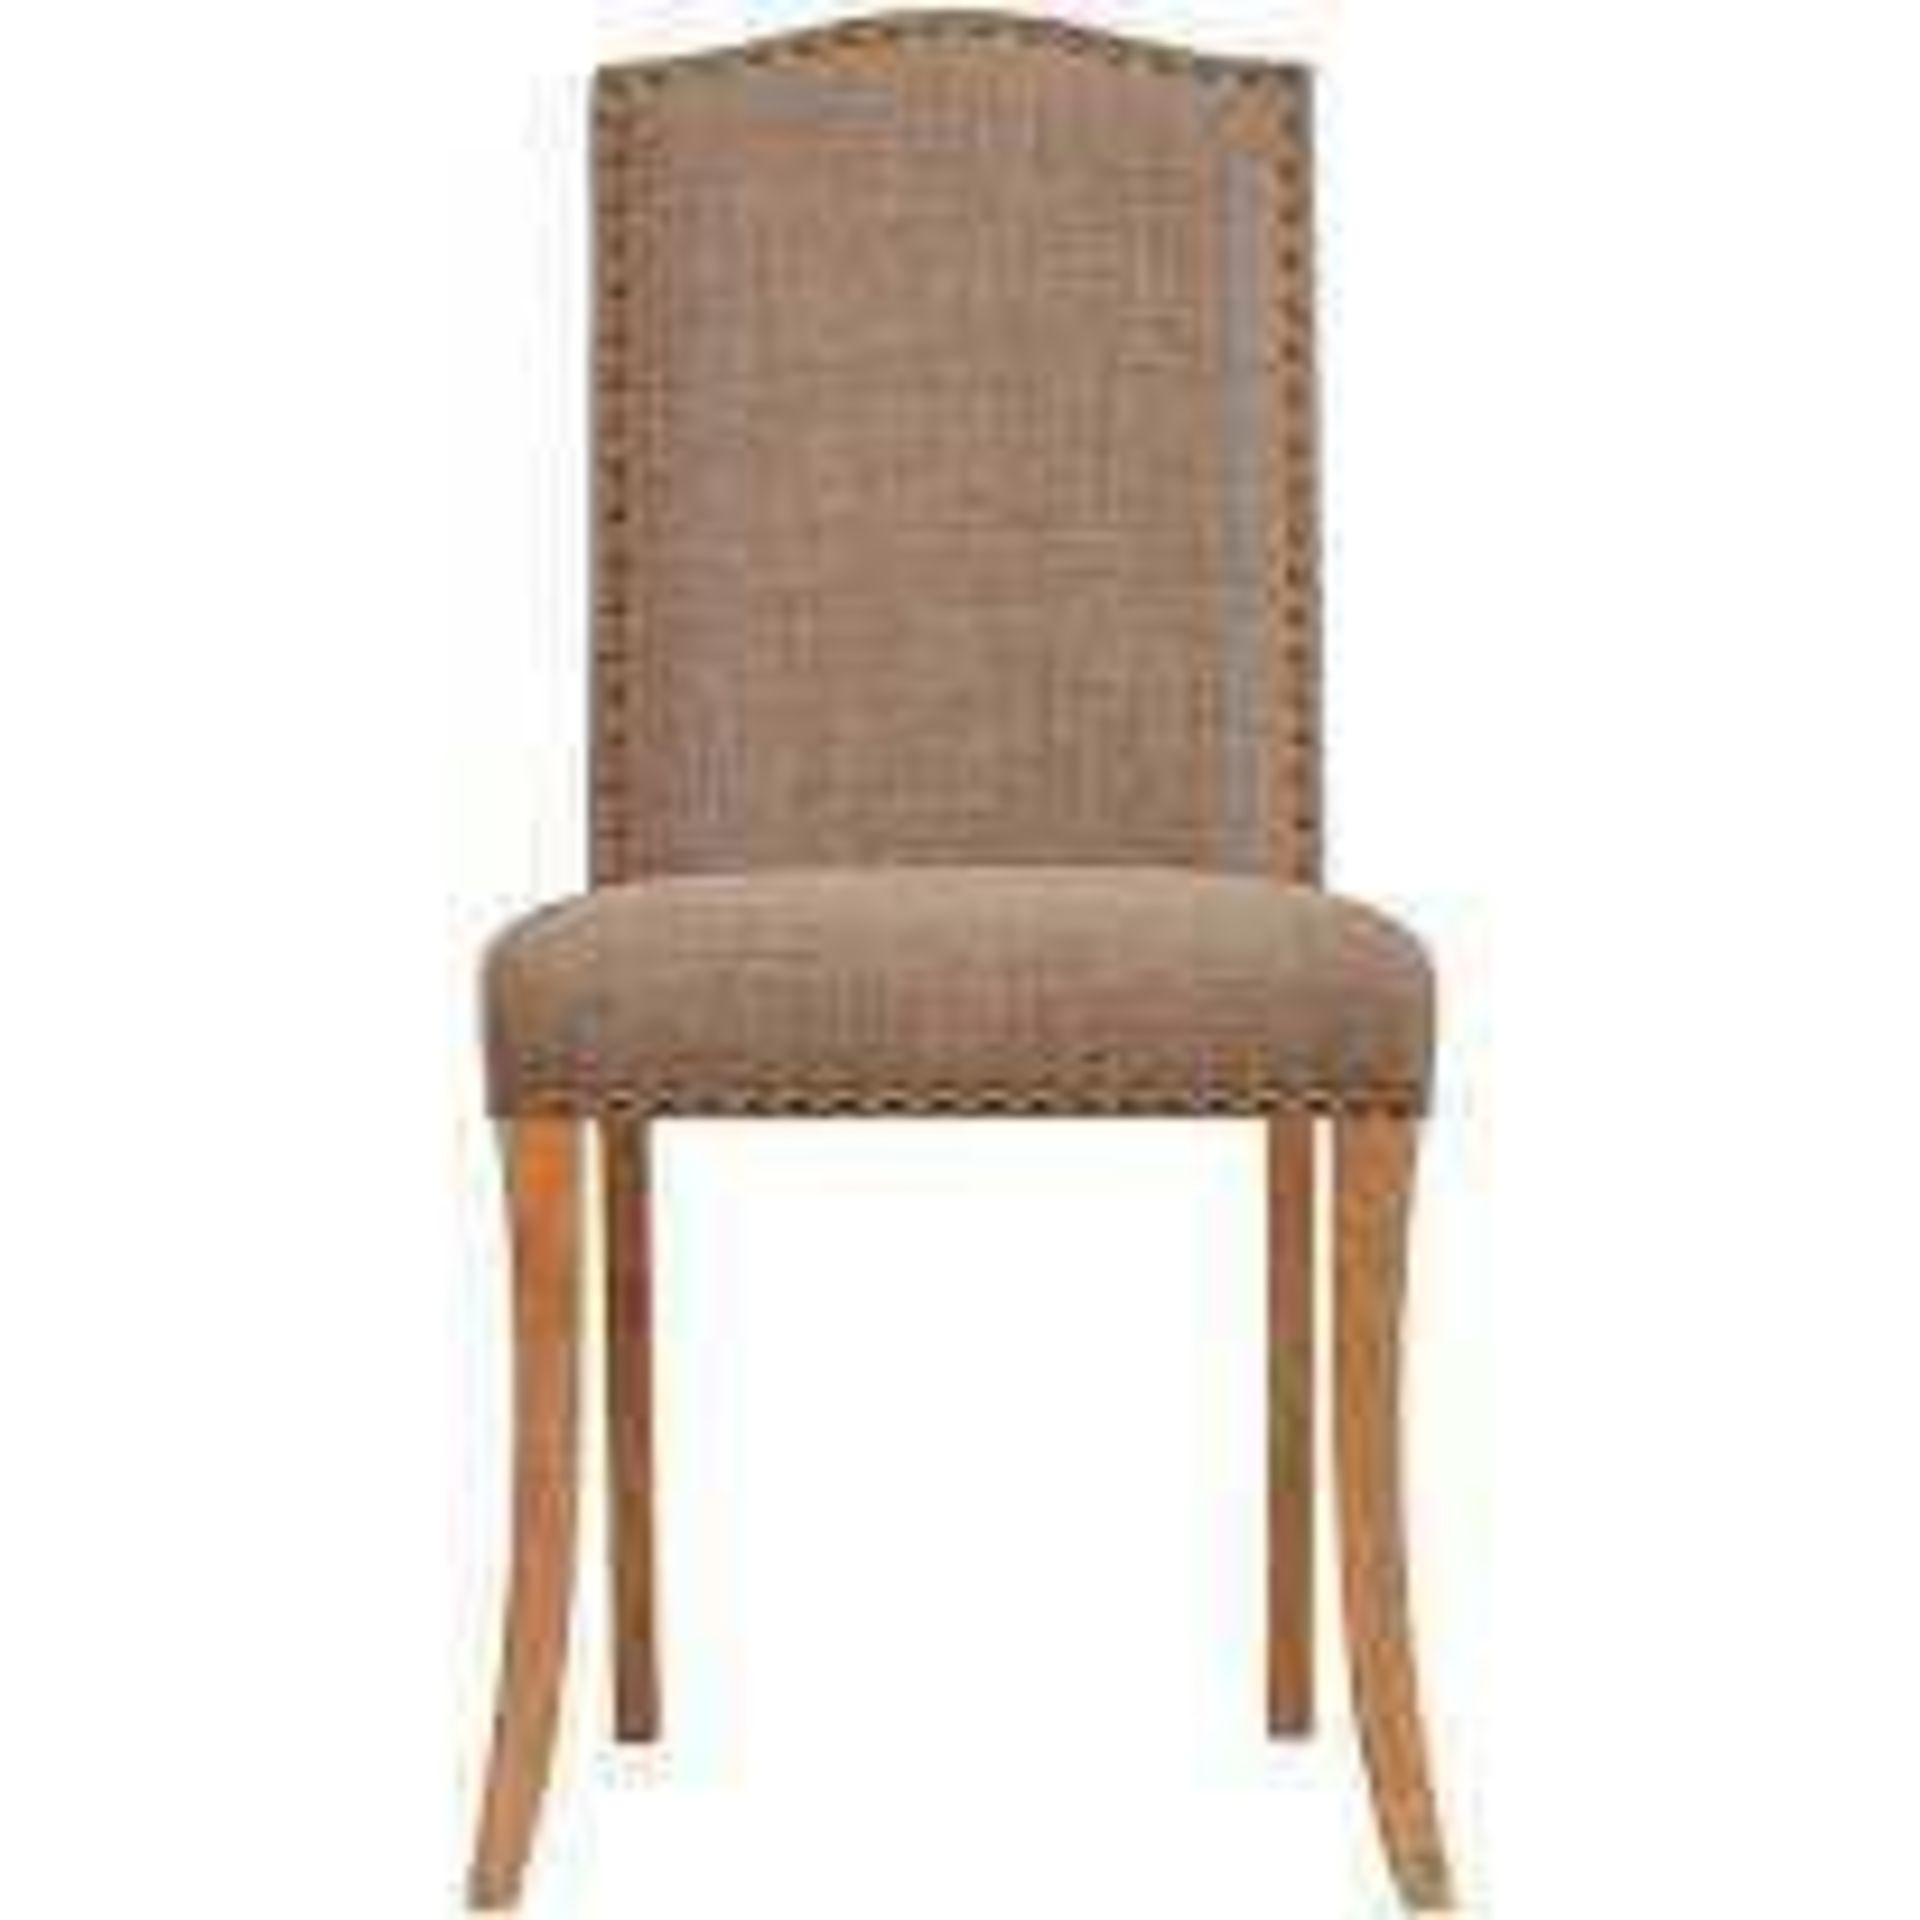 RRP £180 Boxed Two Evesham Dining Chair In Biege